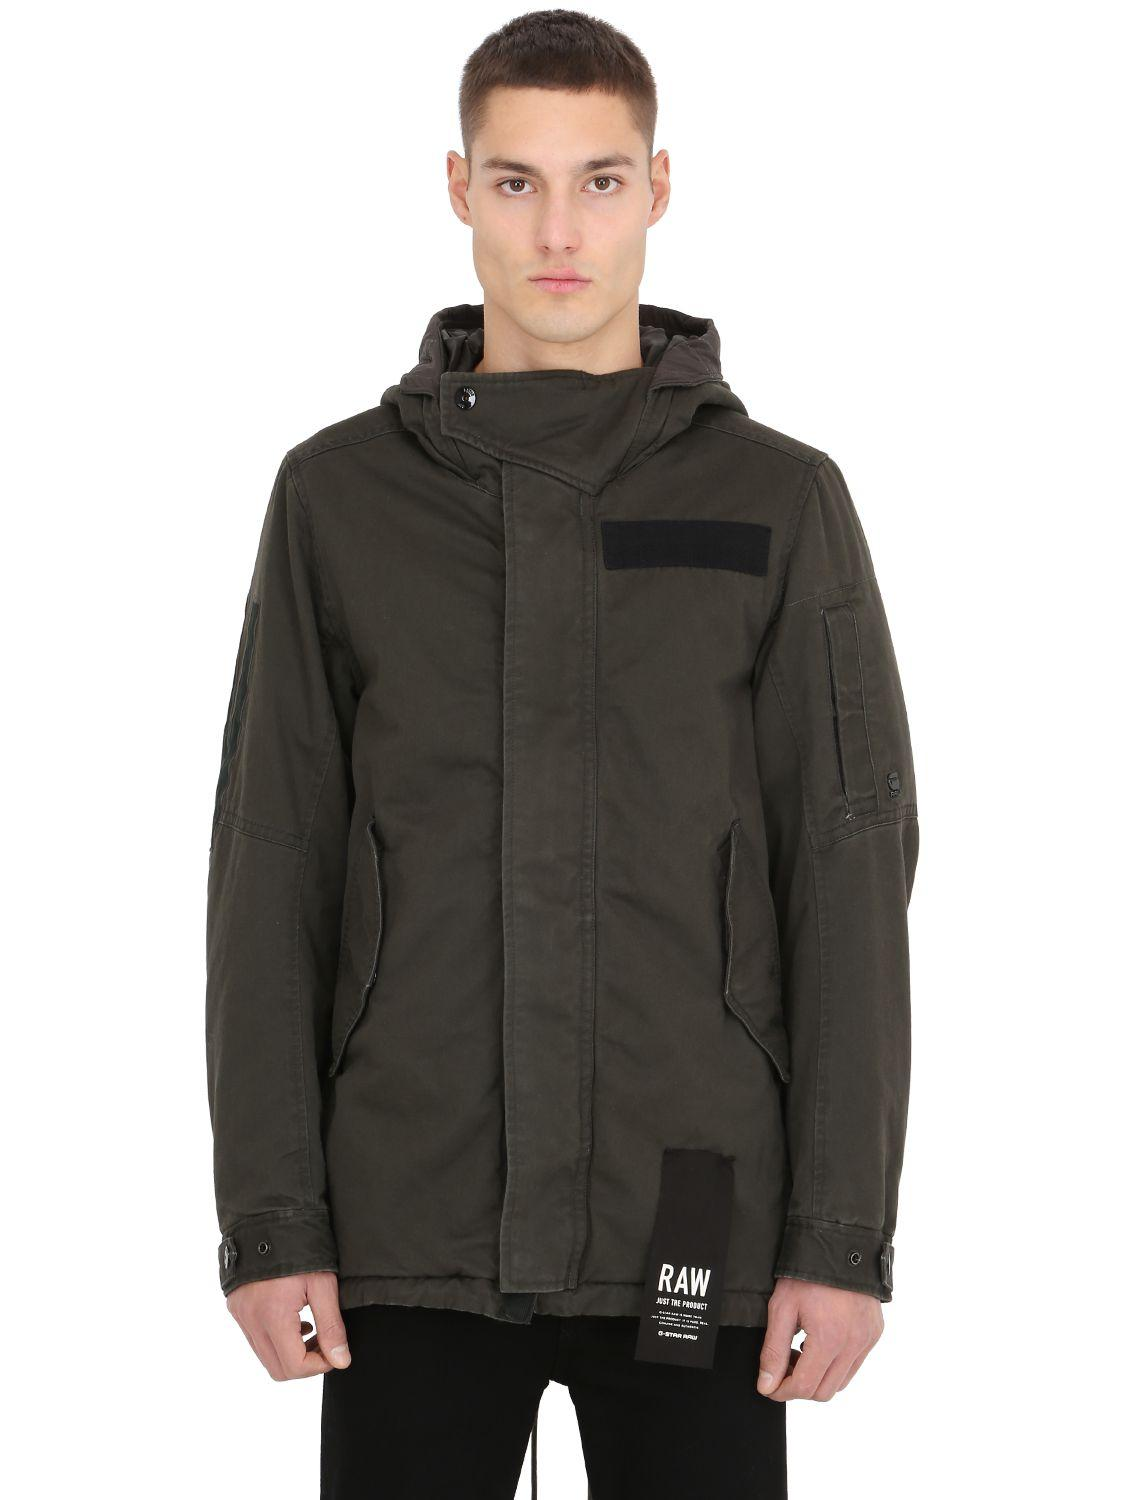 g star raw hooded cotton parka w patches for men lyst. Black Bedroom Furniture Sets. Home Design Ideas